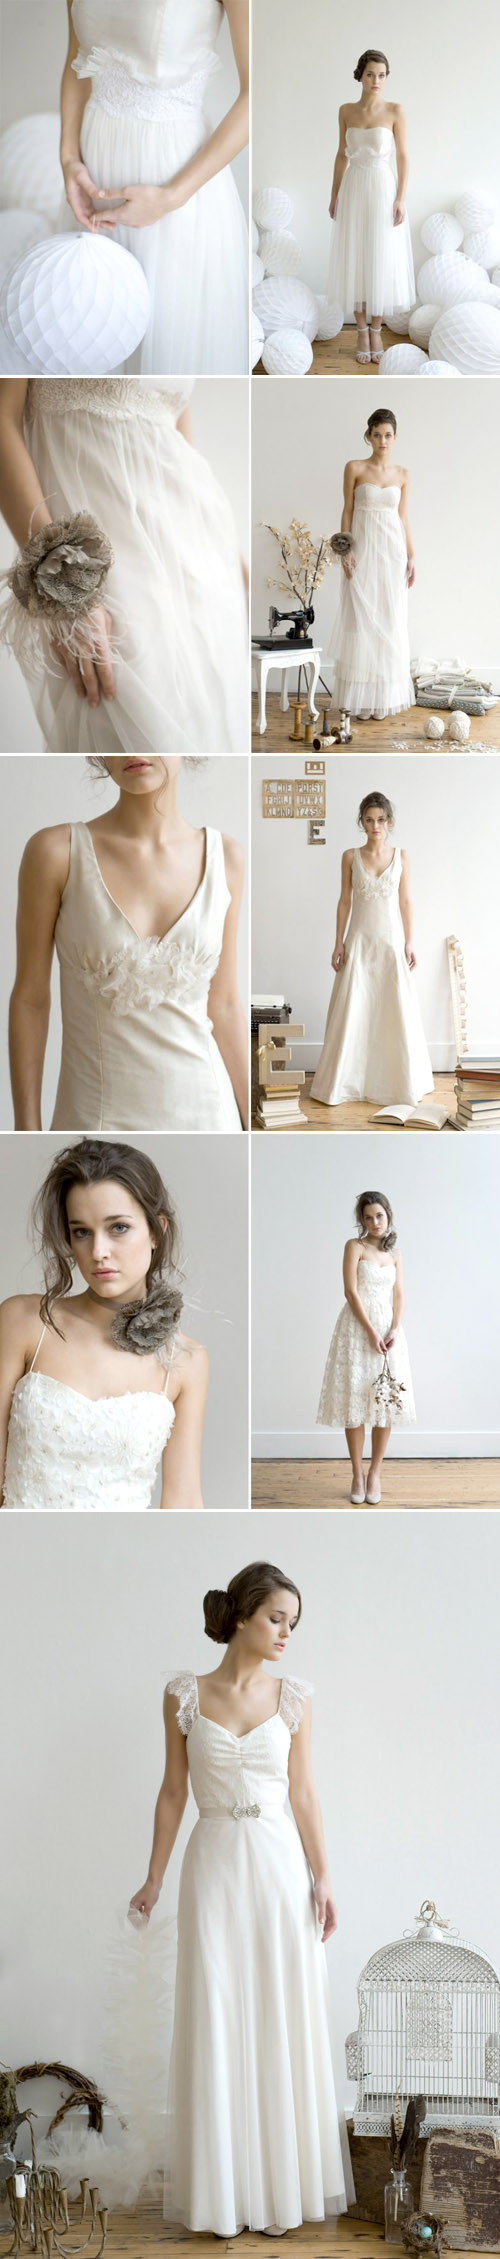 the spring 2010 bridal collection from The Engligh Department, images by Lisa Warninger